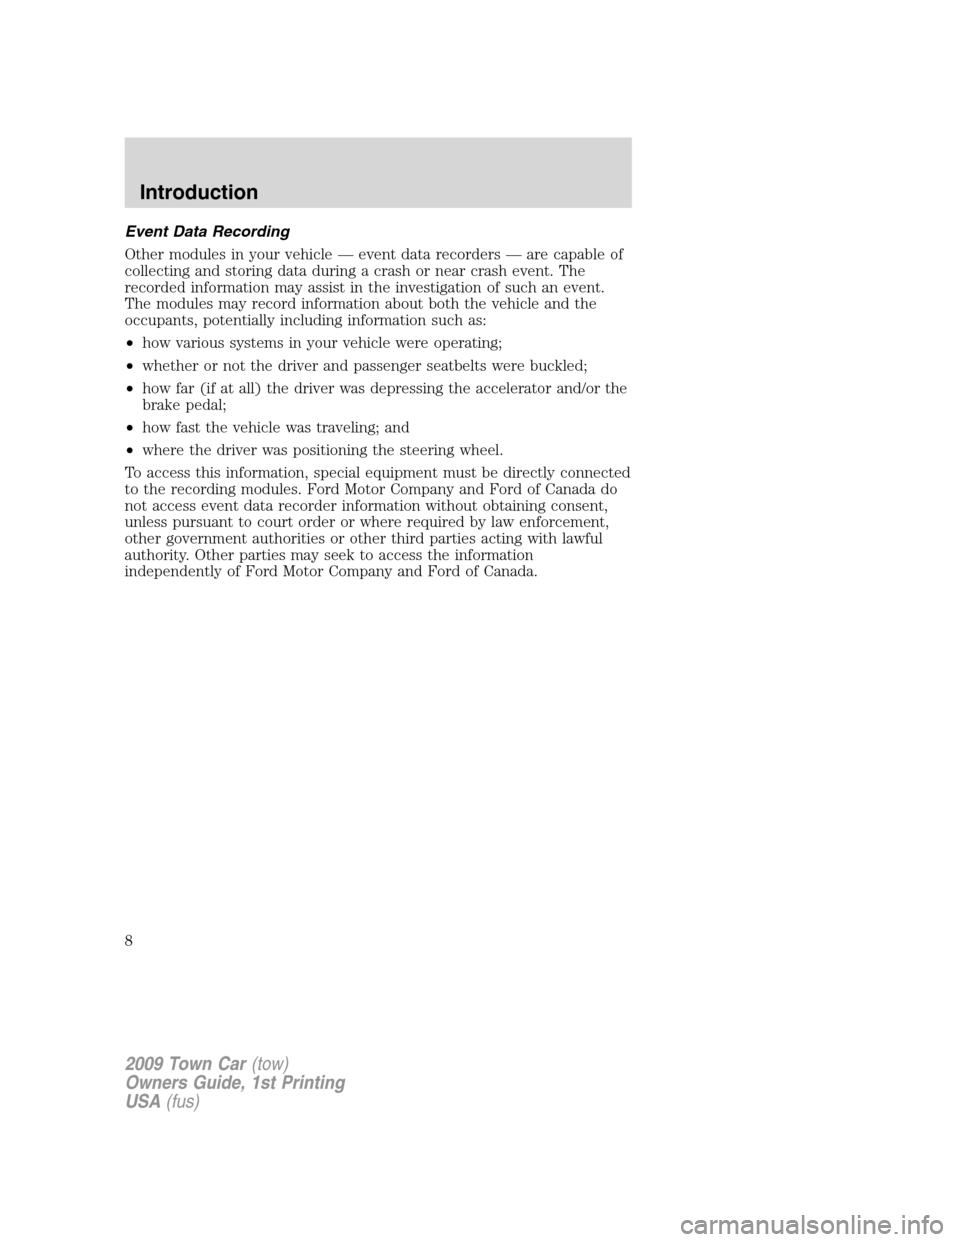 LINCOLN TOWN CAR 2009  Owners Manual, Page 8